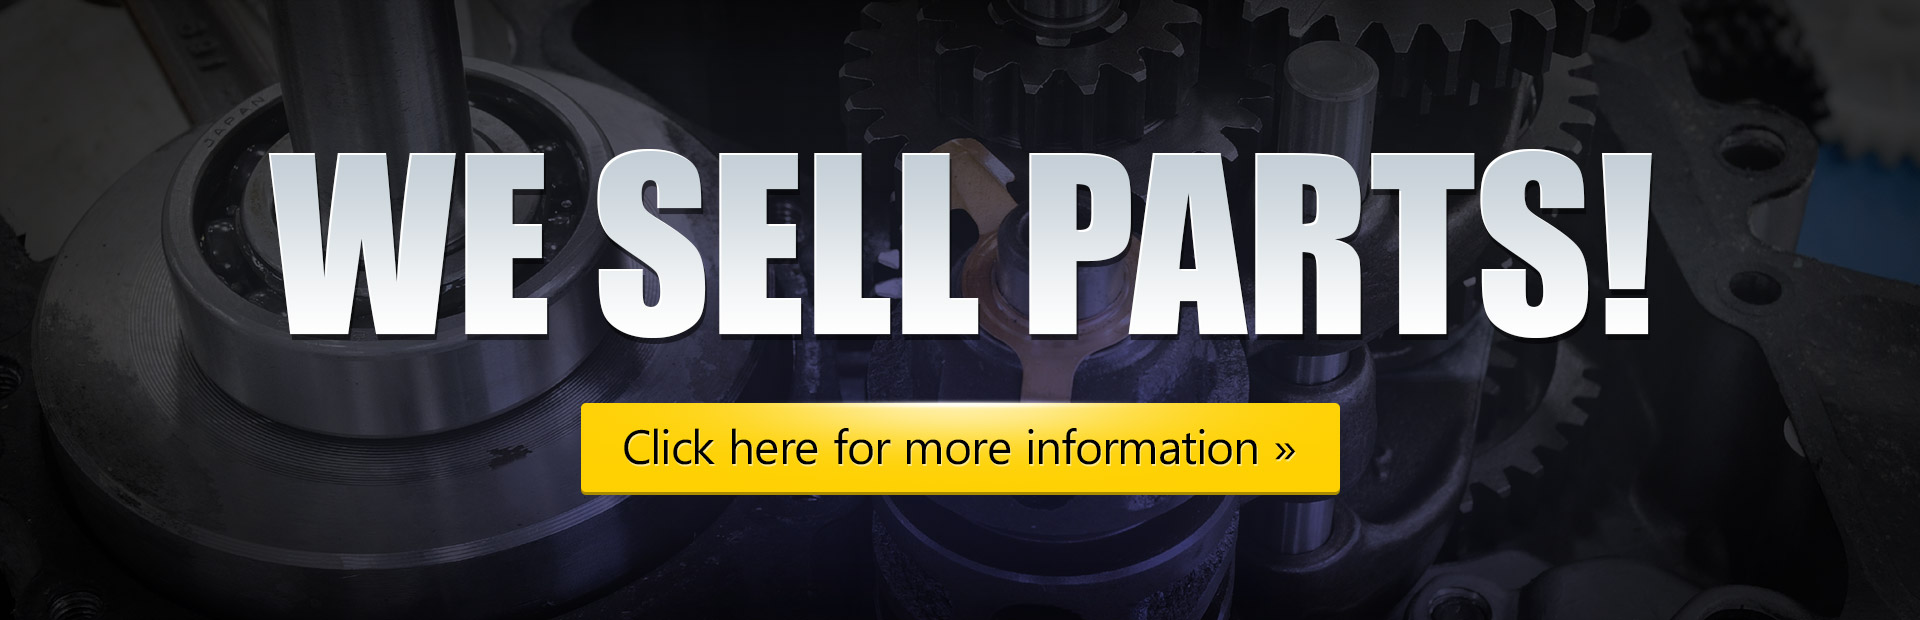 We sell parts! Click here for more information.